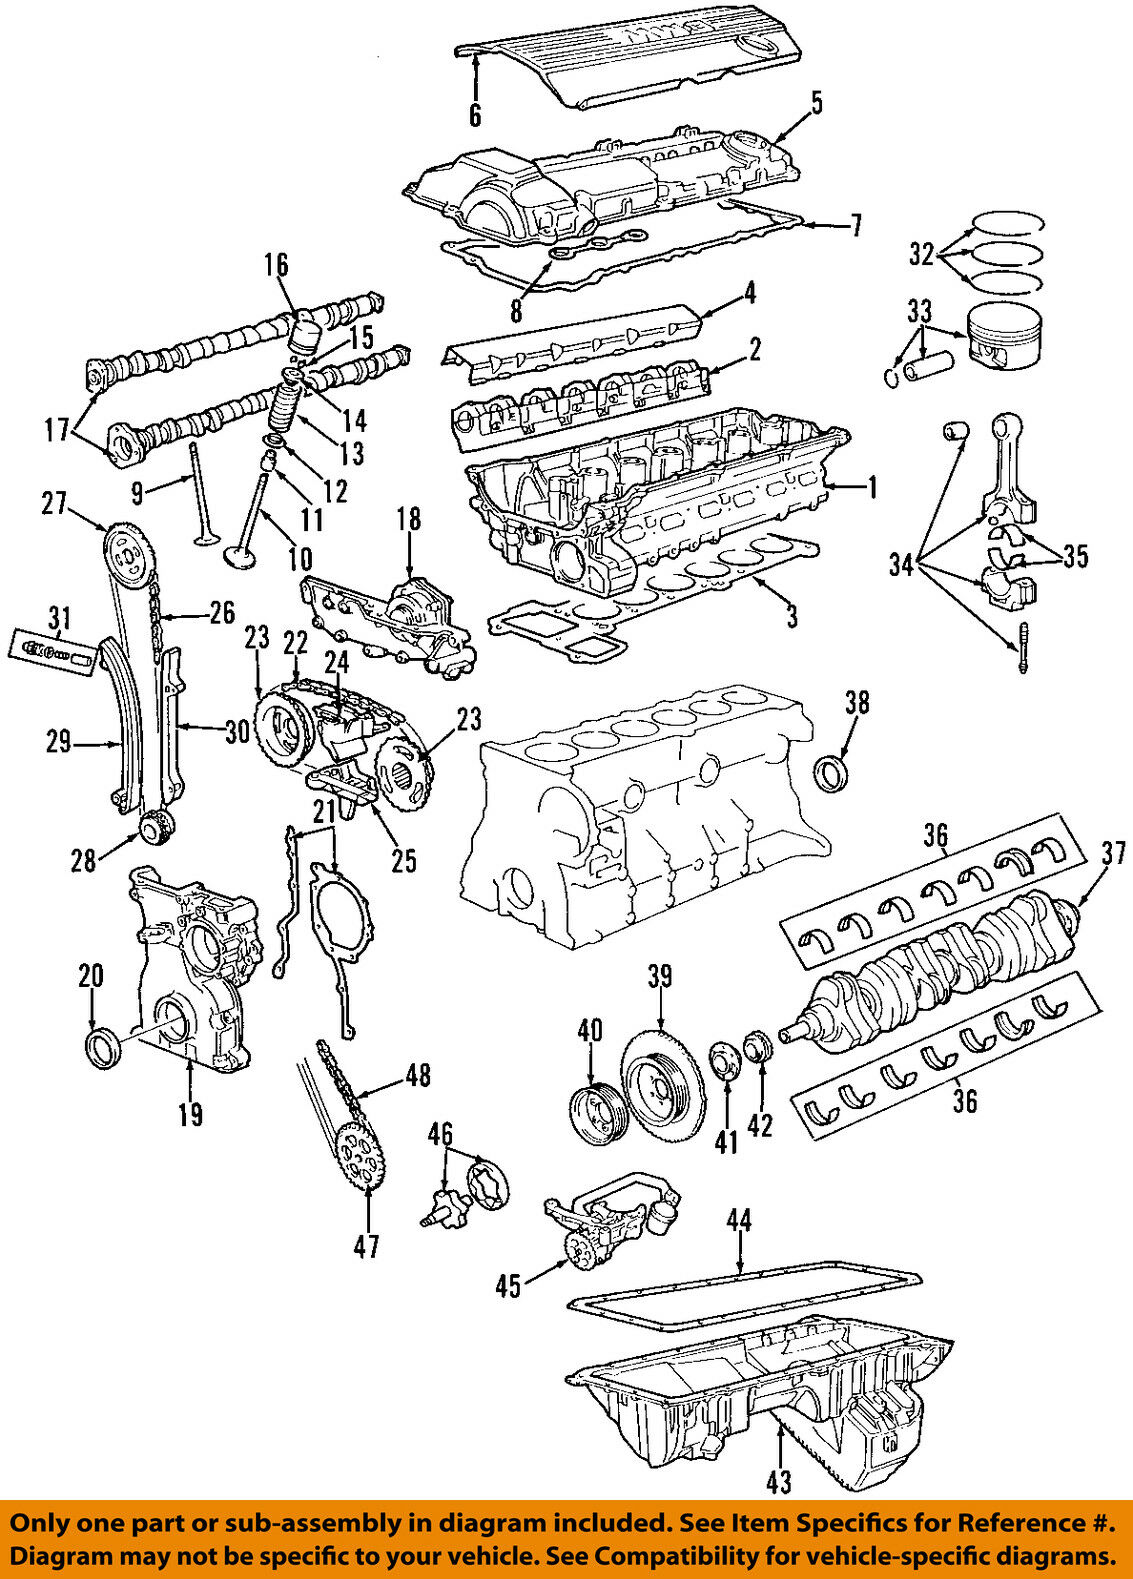 hight resolution of 1996 bmw z3 engine diagram automotive wiring diagrams 97 bmw z3 roadster bmw m52 engine diagram